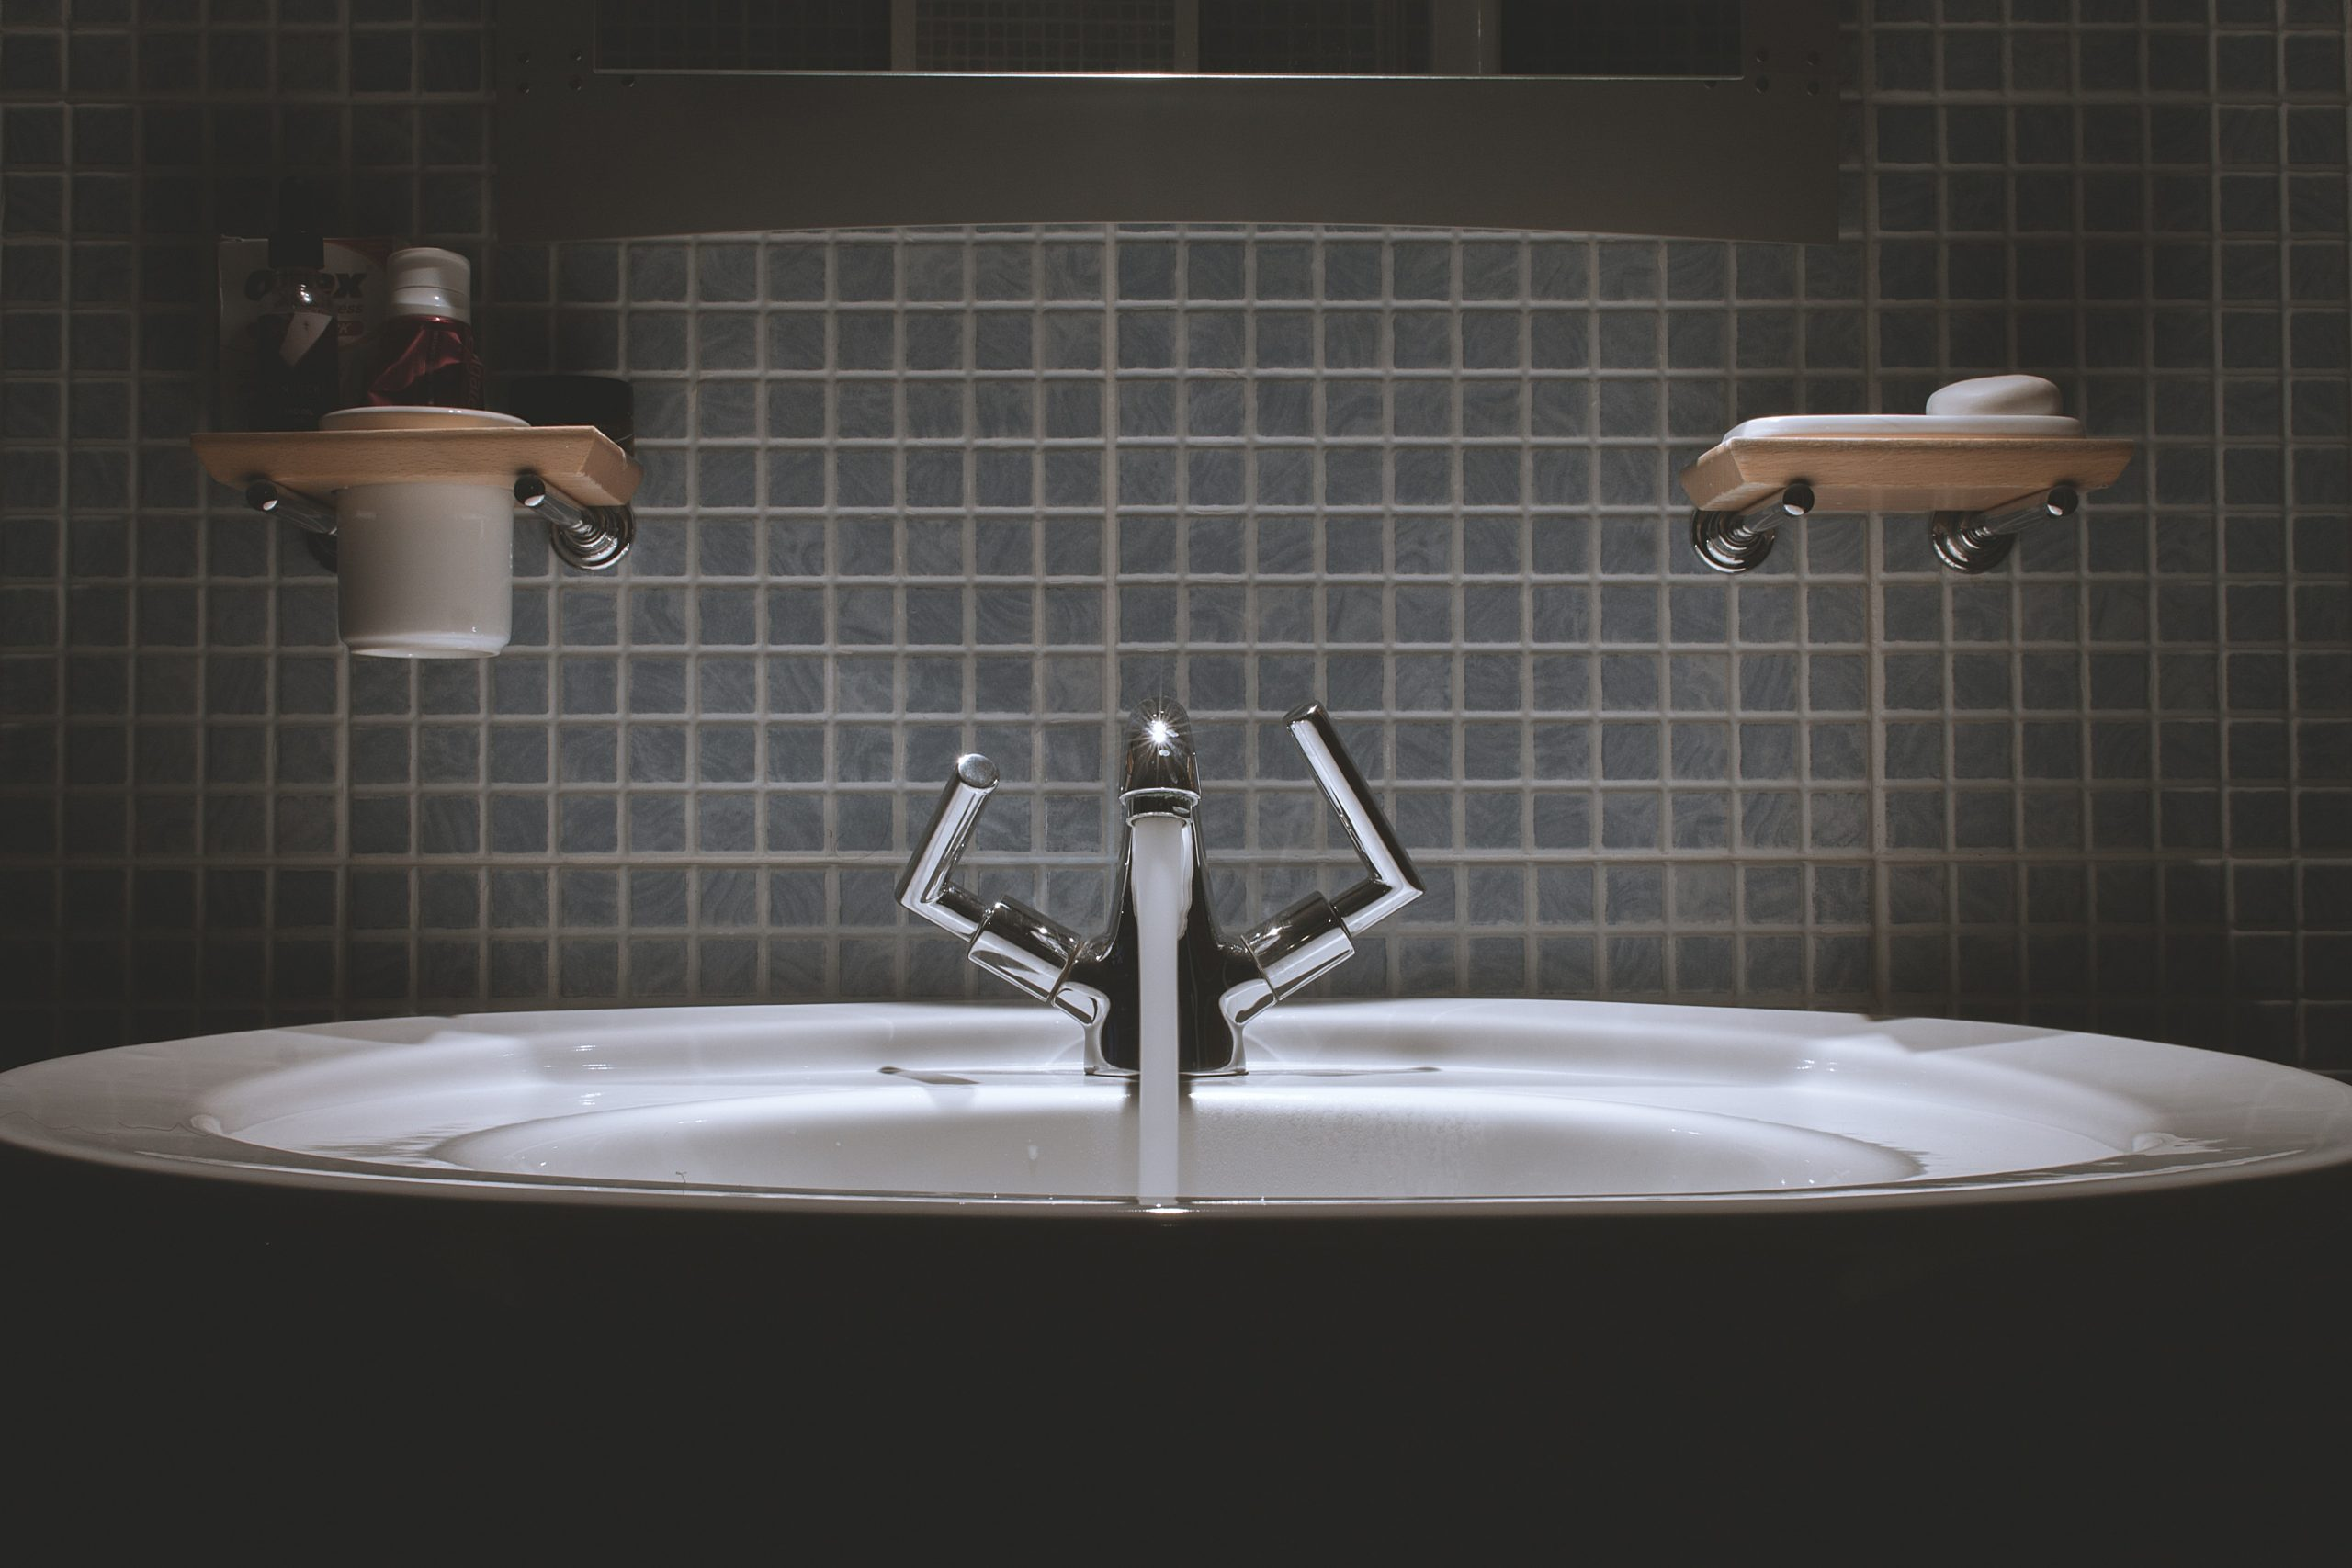 How to Clean Your Sink Drain Yourself: Part 2